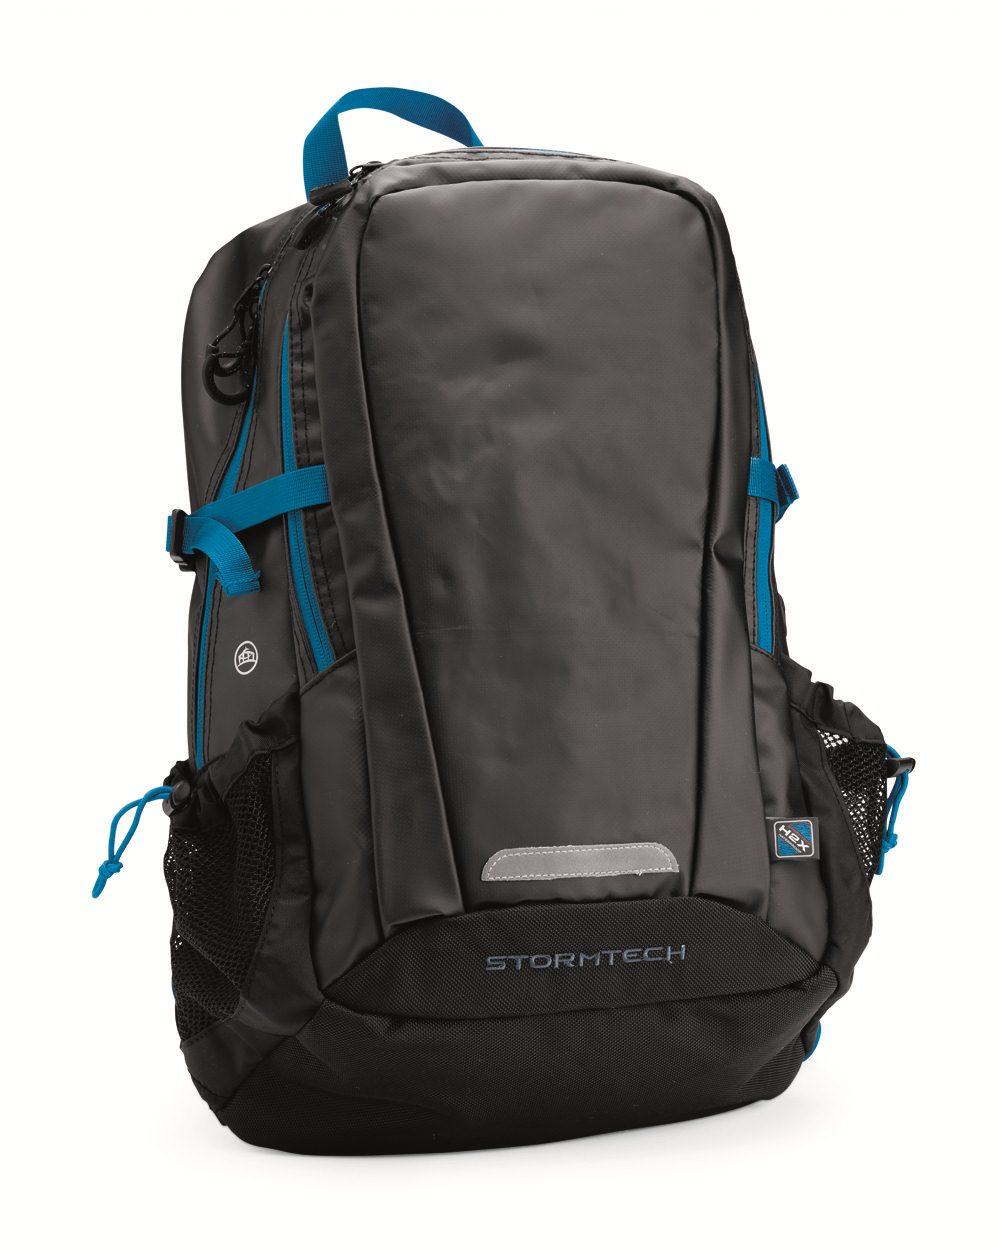 Stormtech Waterproof Backpack - WPB-2